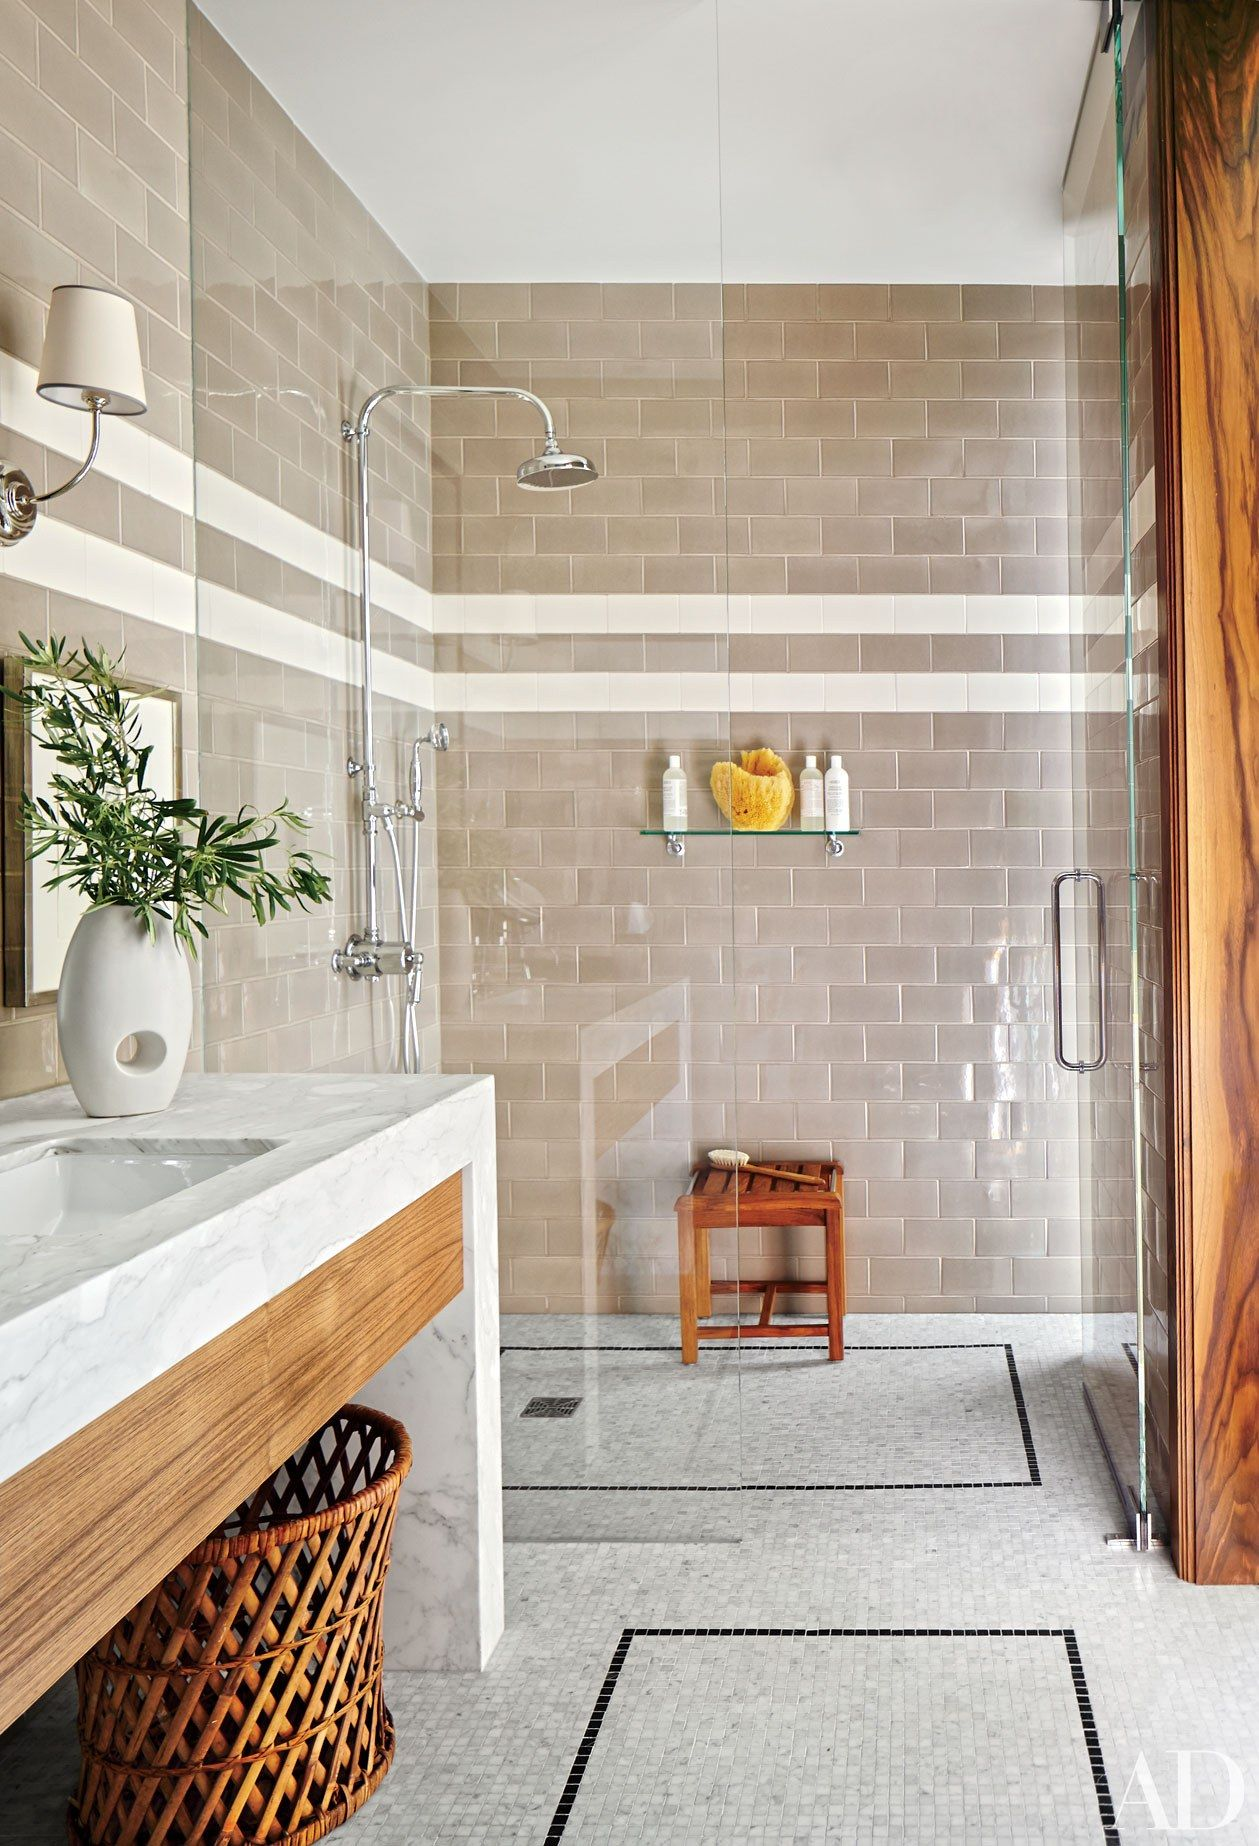 Guest Bathroom Decorating Inspiration Photos - Architectural Digest